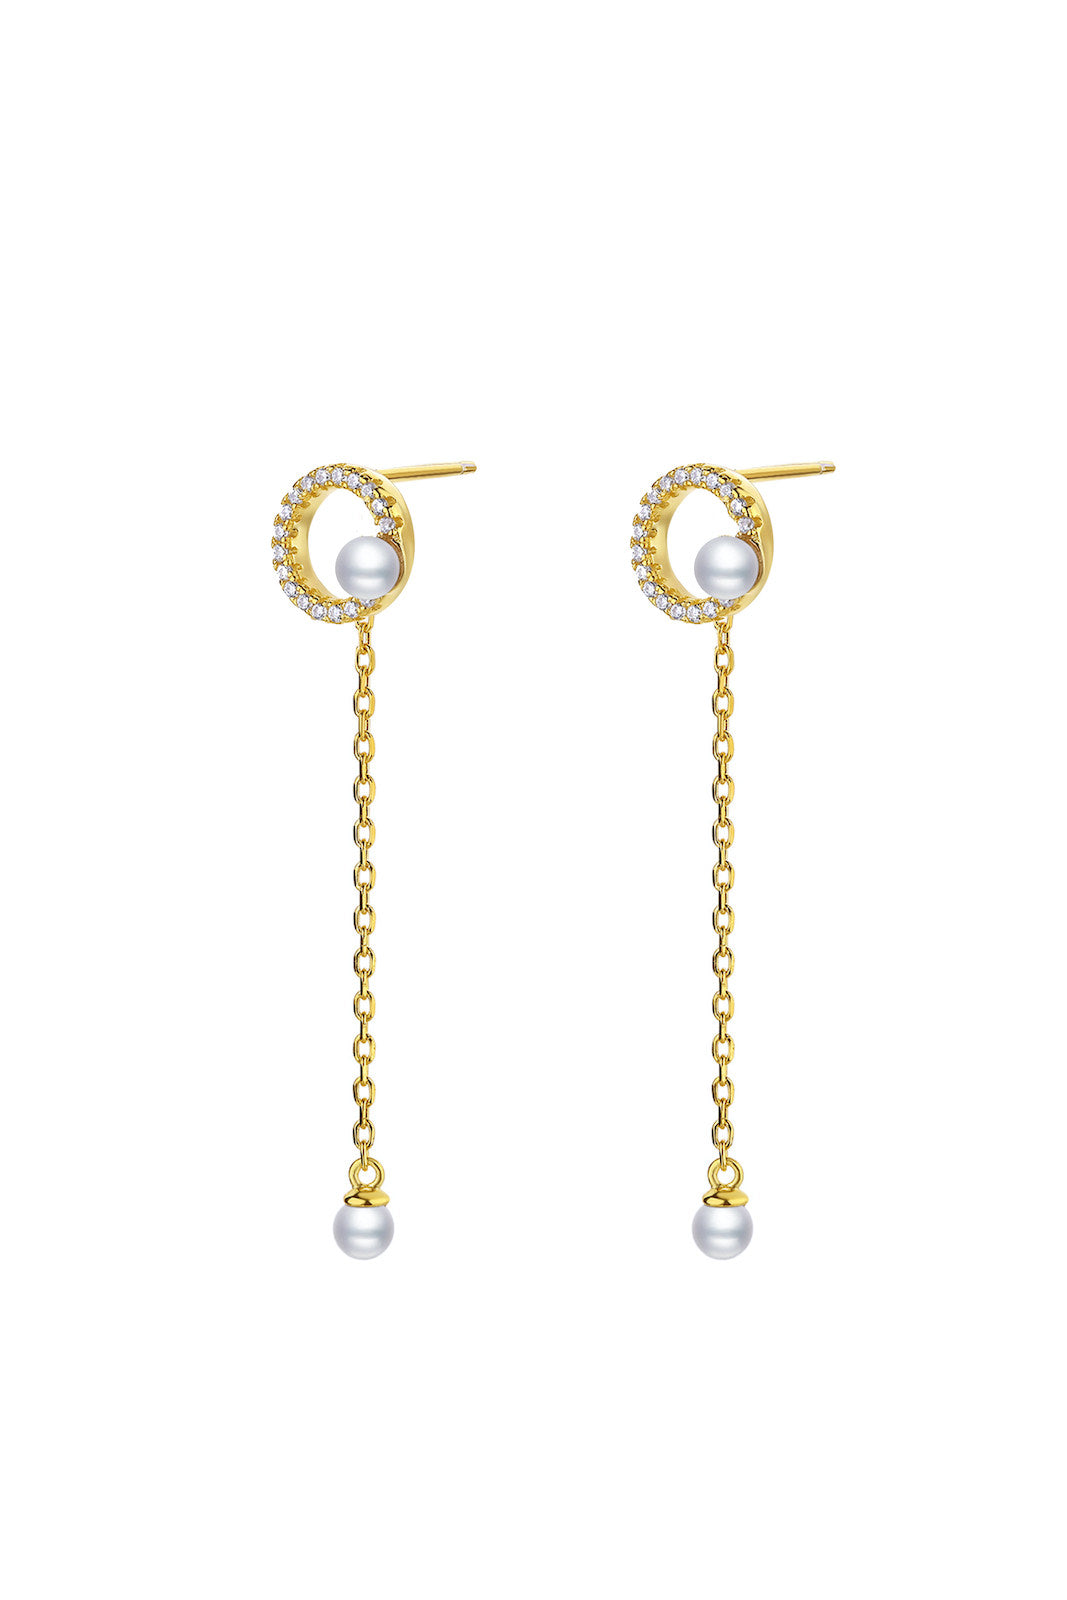 Gold Plated Geometrical Silver Earrings - Mini Circle